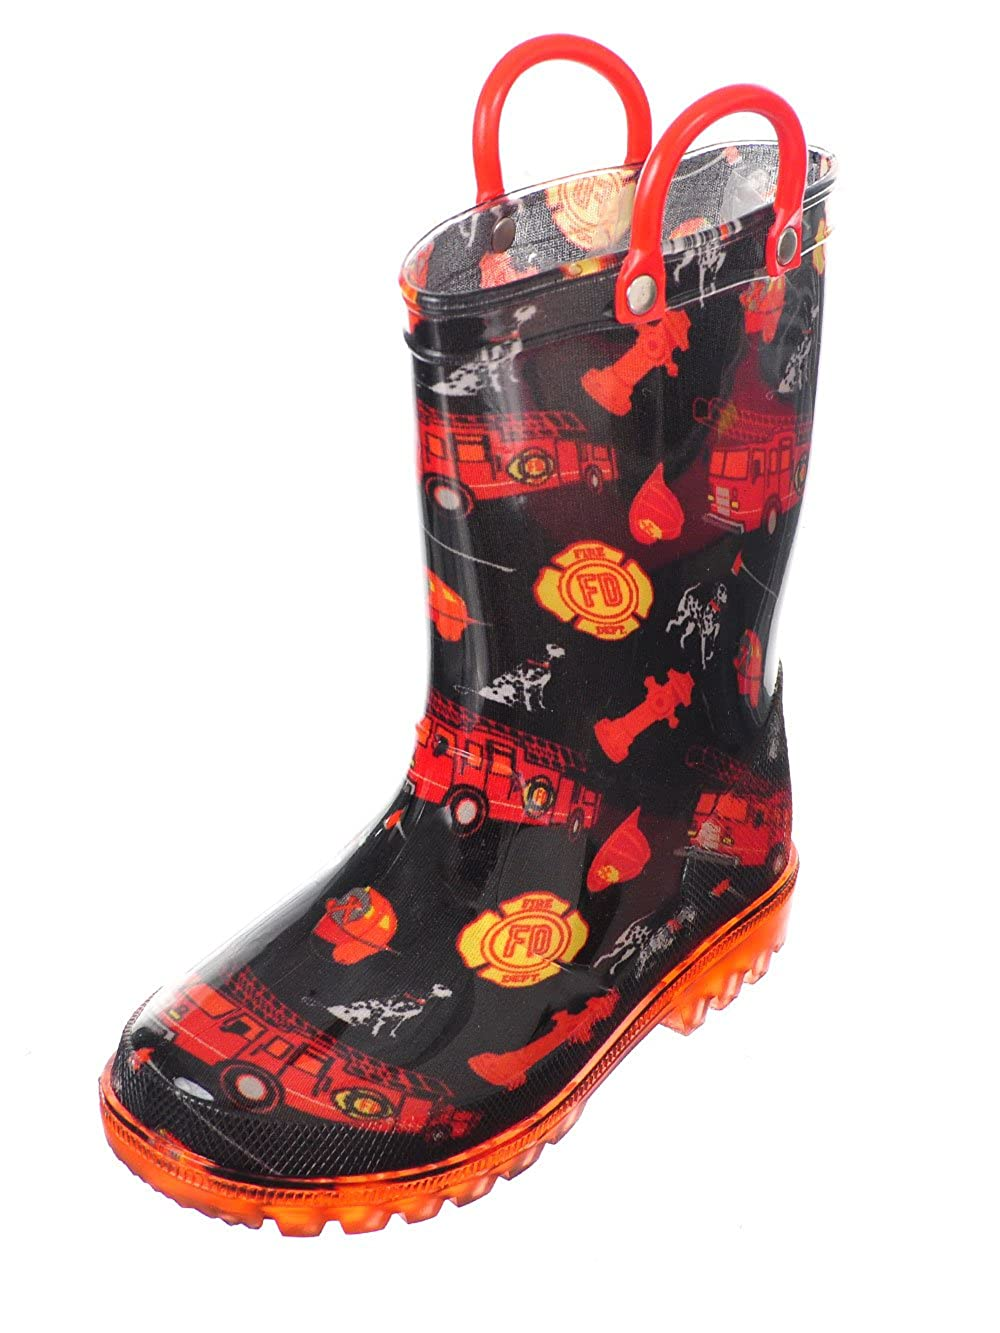 Chillipop Light up Rainboots Boys, Girls & Toddlers Fun Kid Prints 5 Lights